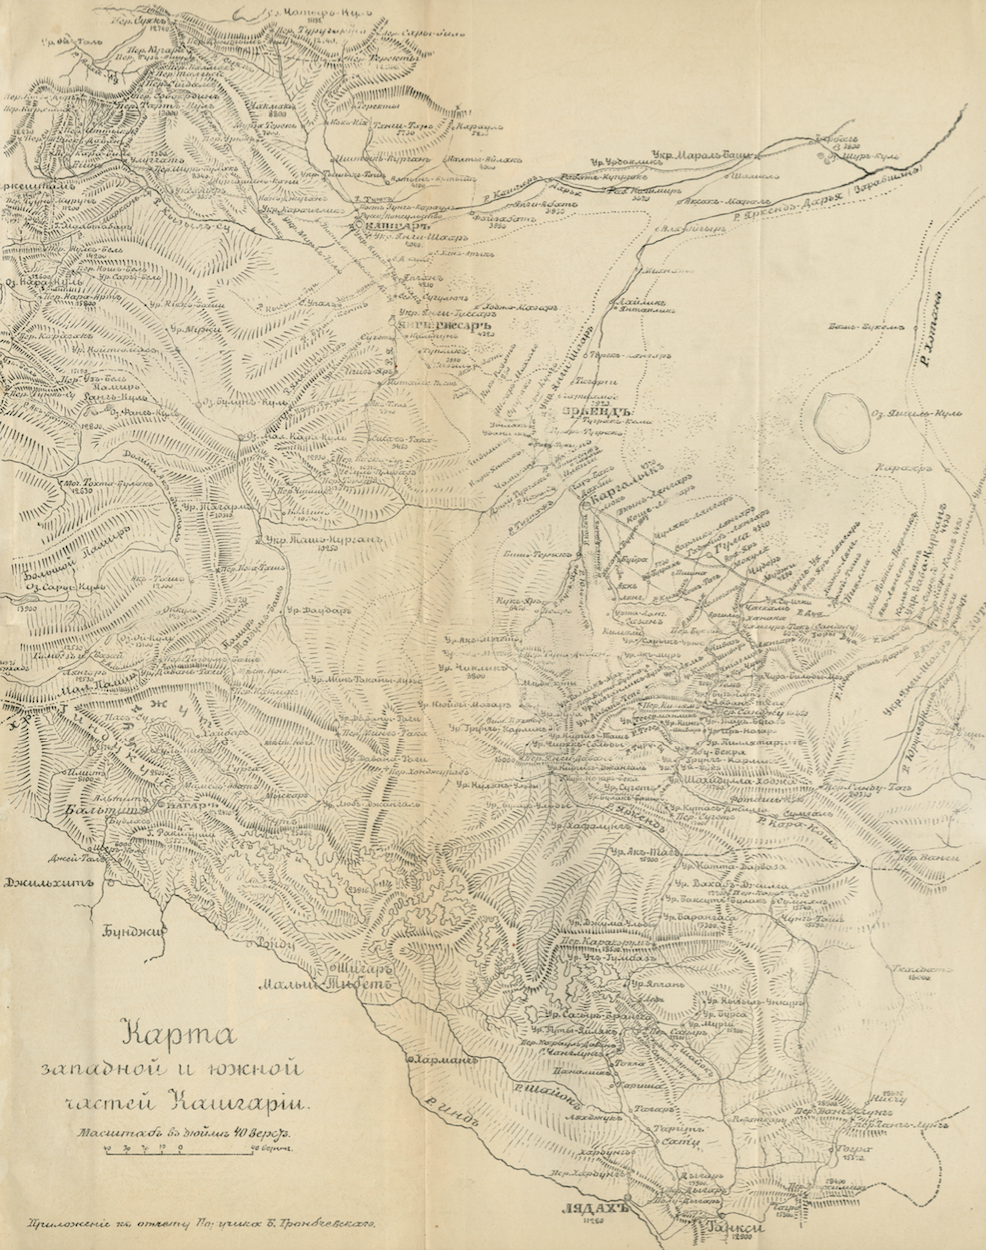 Map of the western and southern parts of Kashgariya 1885